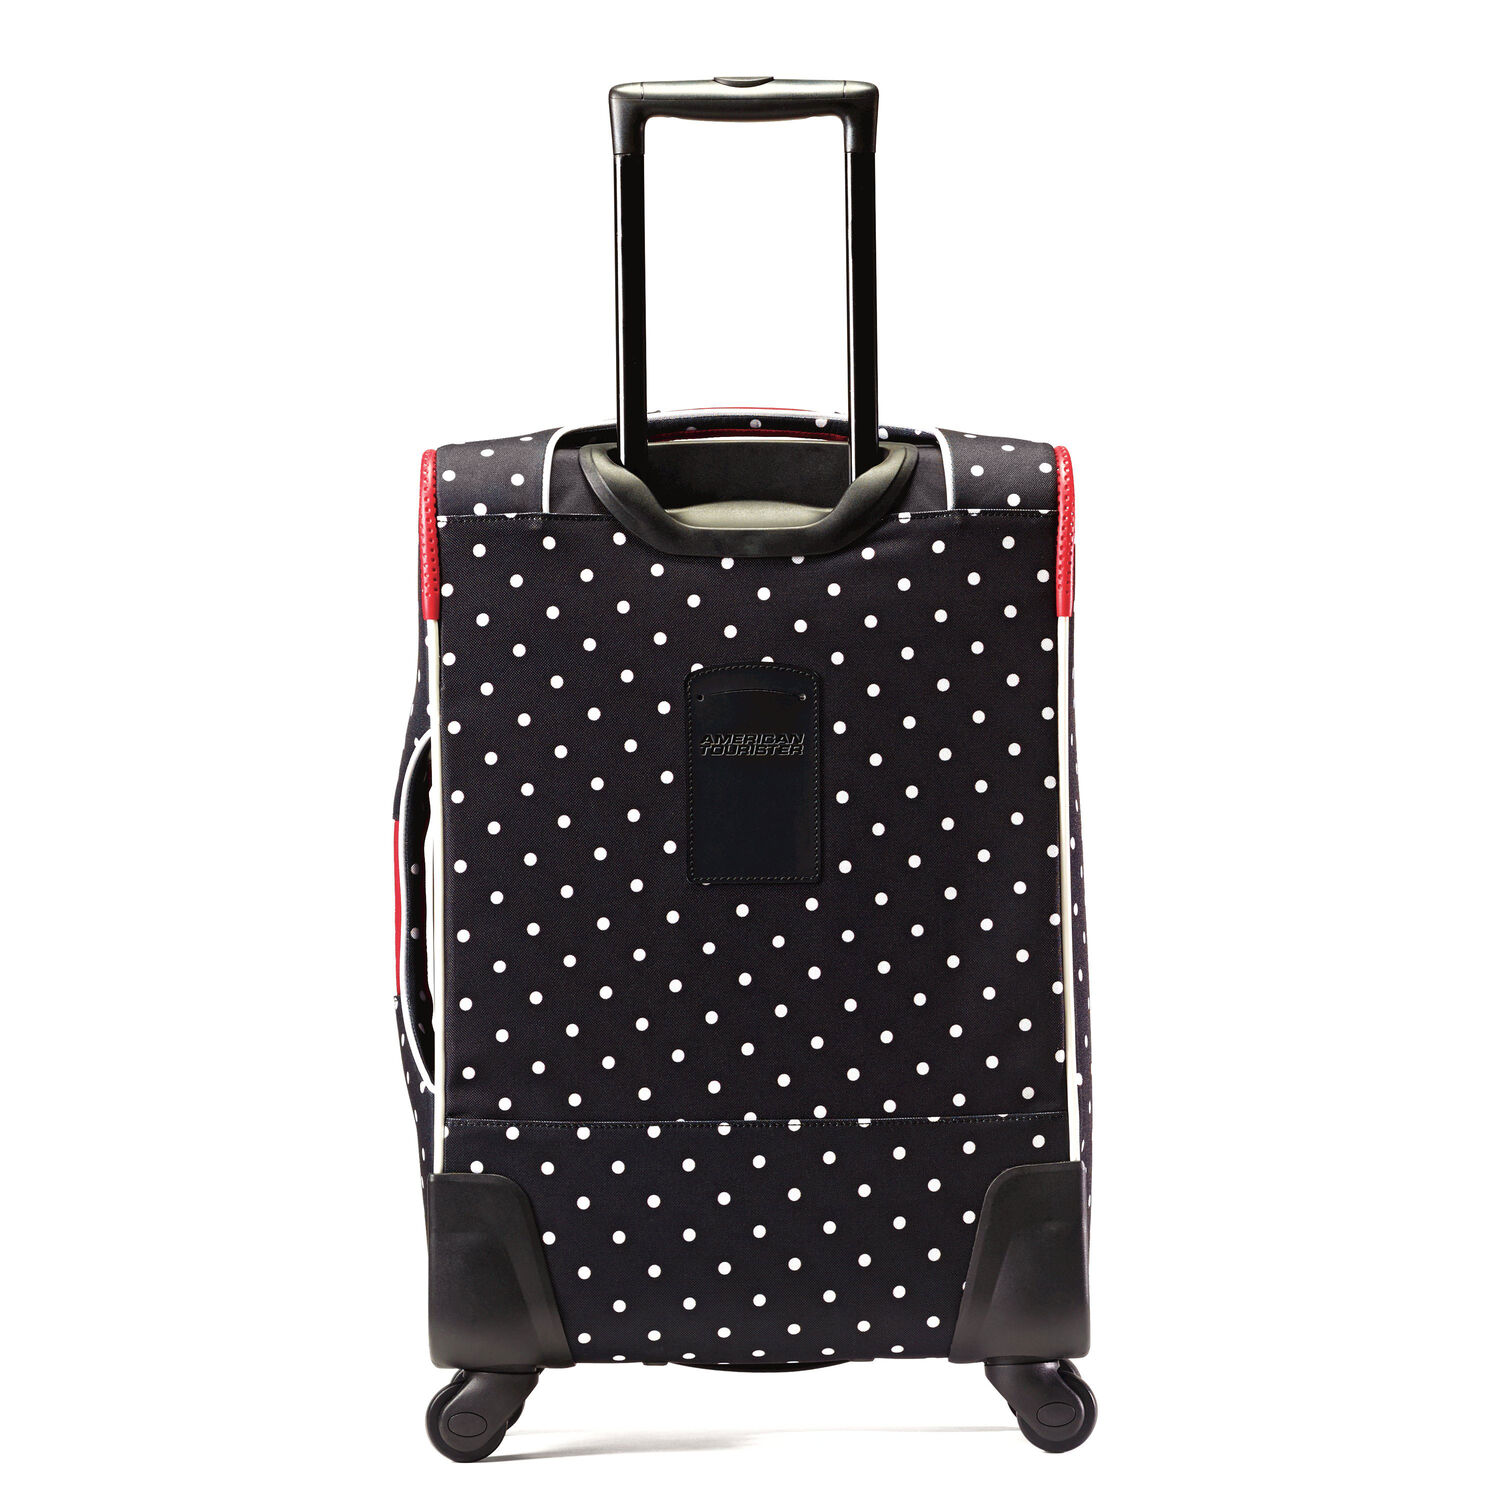 cd779f48ae6 American Tourister Disney Minnie Mouse 21 quot  Spinner in the color Minnie  Mouse Red Bow.